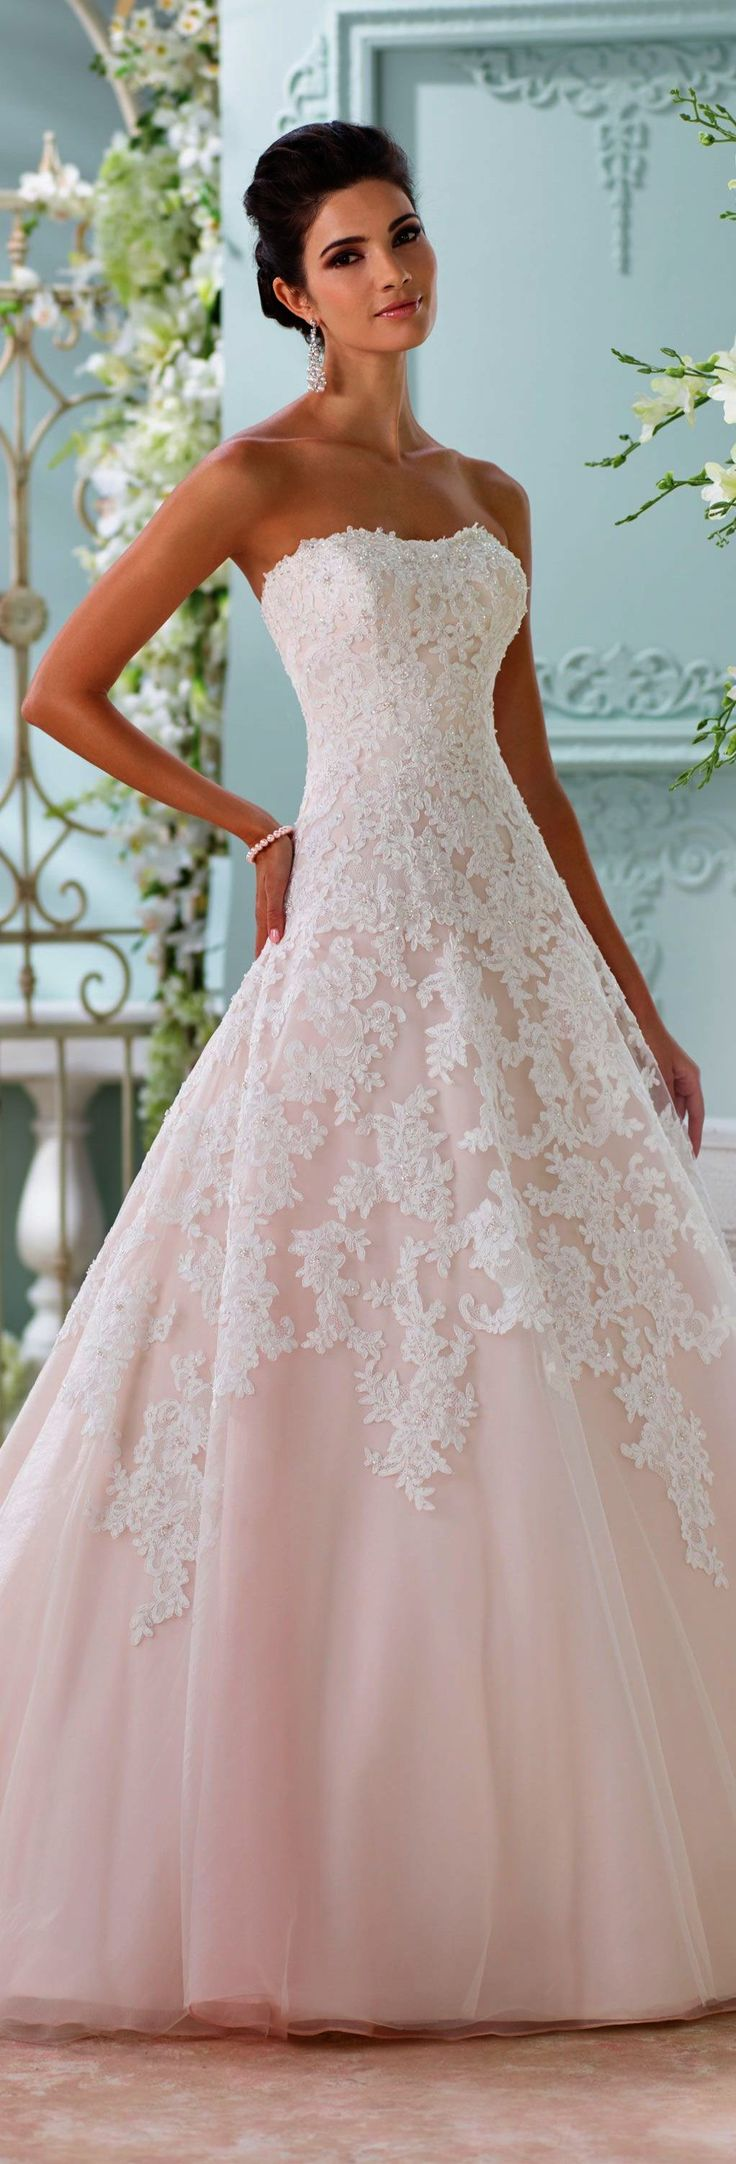 Lace Strapless Wedding Dresses Lace Wedding Dress High Neck Low Back